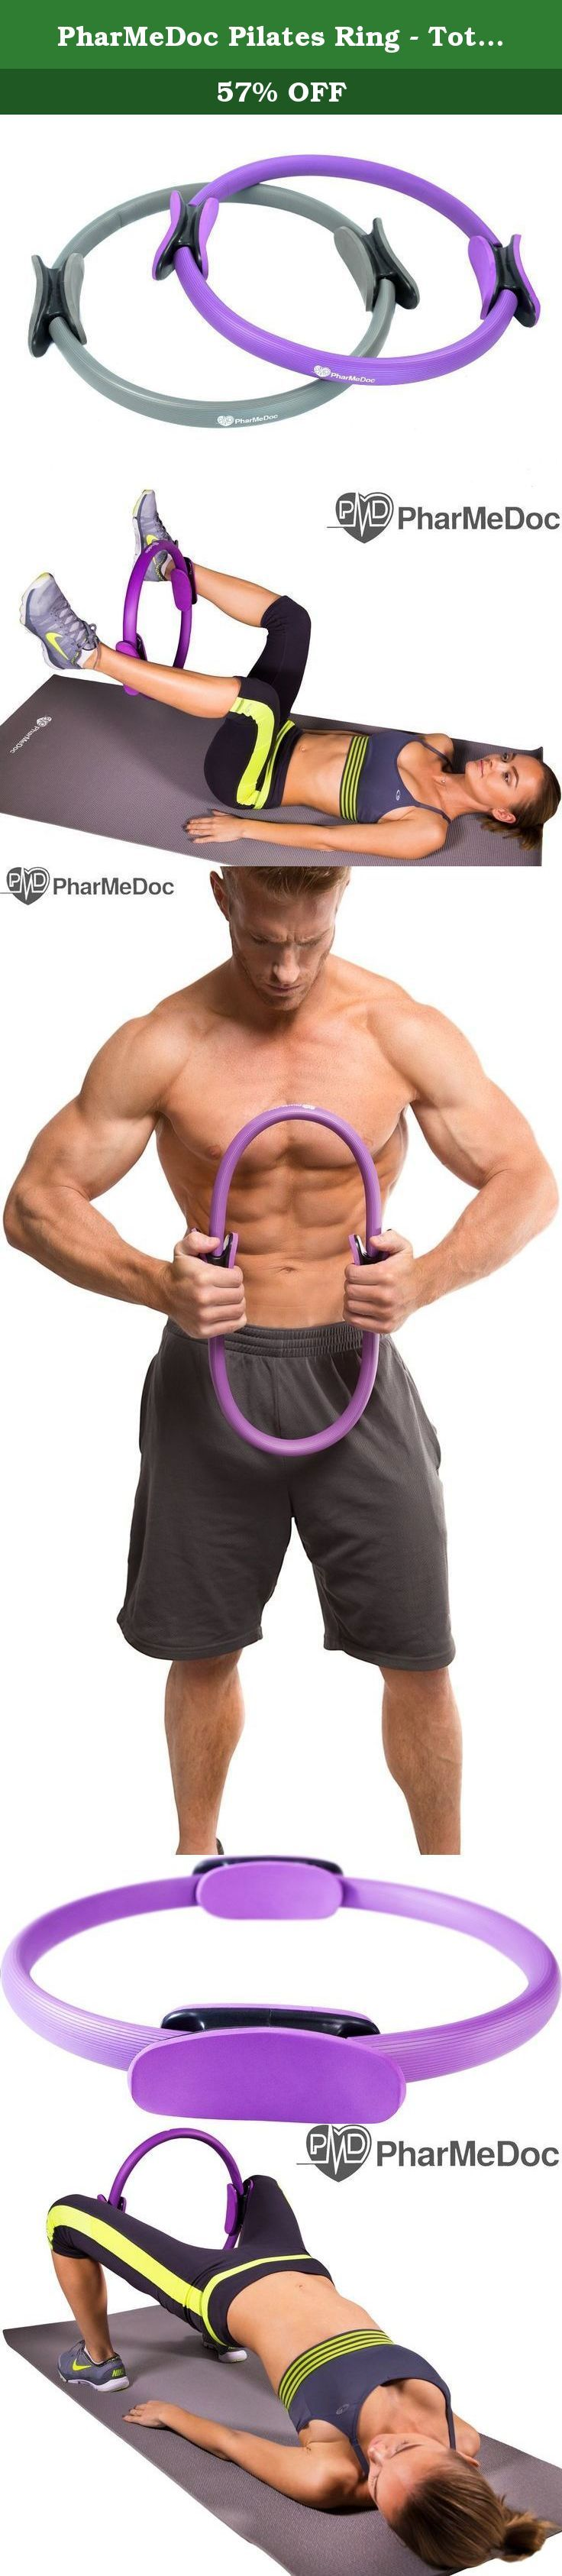 "PharMeDoc Pilates Ring - Total Body Gym - #1 Exercise Fitness Circle to Burn Belly Fat & Toning of Abs, Legs, Arms, Thighs - Resistance Band - Dual Grip Handles - 15"" - Purple. Light yet Durable Glass Fiber Composite Ring • Sturdy Materials protected by a strong plastic coating and covered by an ultra-soft and breathable EVA foam cover to handle all levels of use • Engineered build designed to last without snapping or losing resistance over extended periods of exercise, allowing you to.."